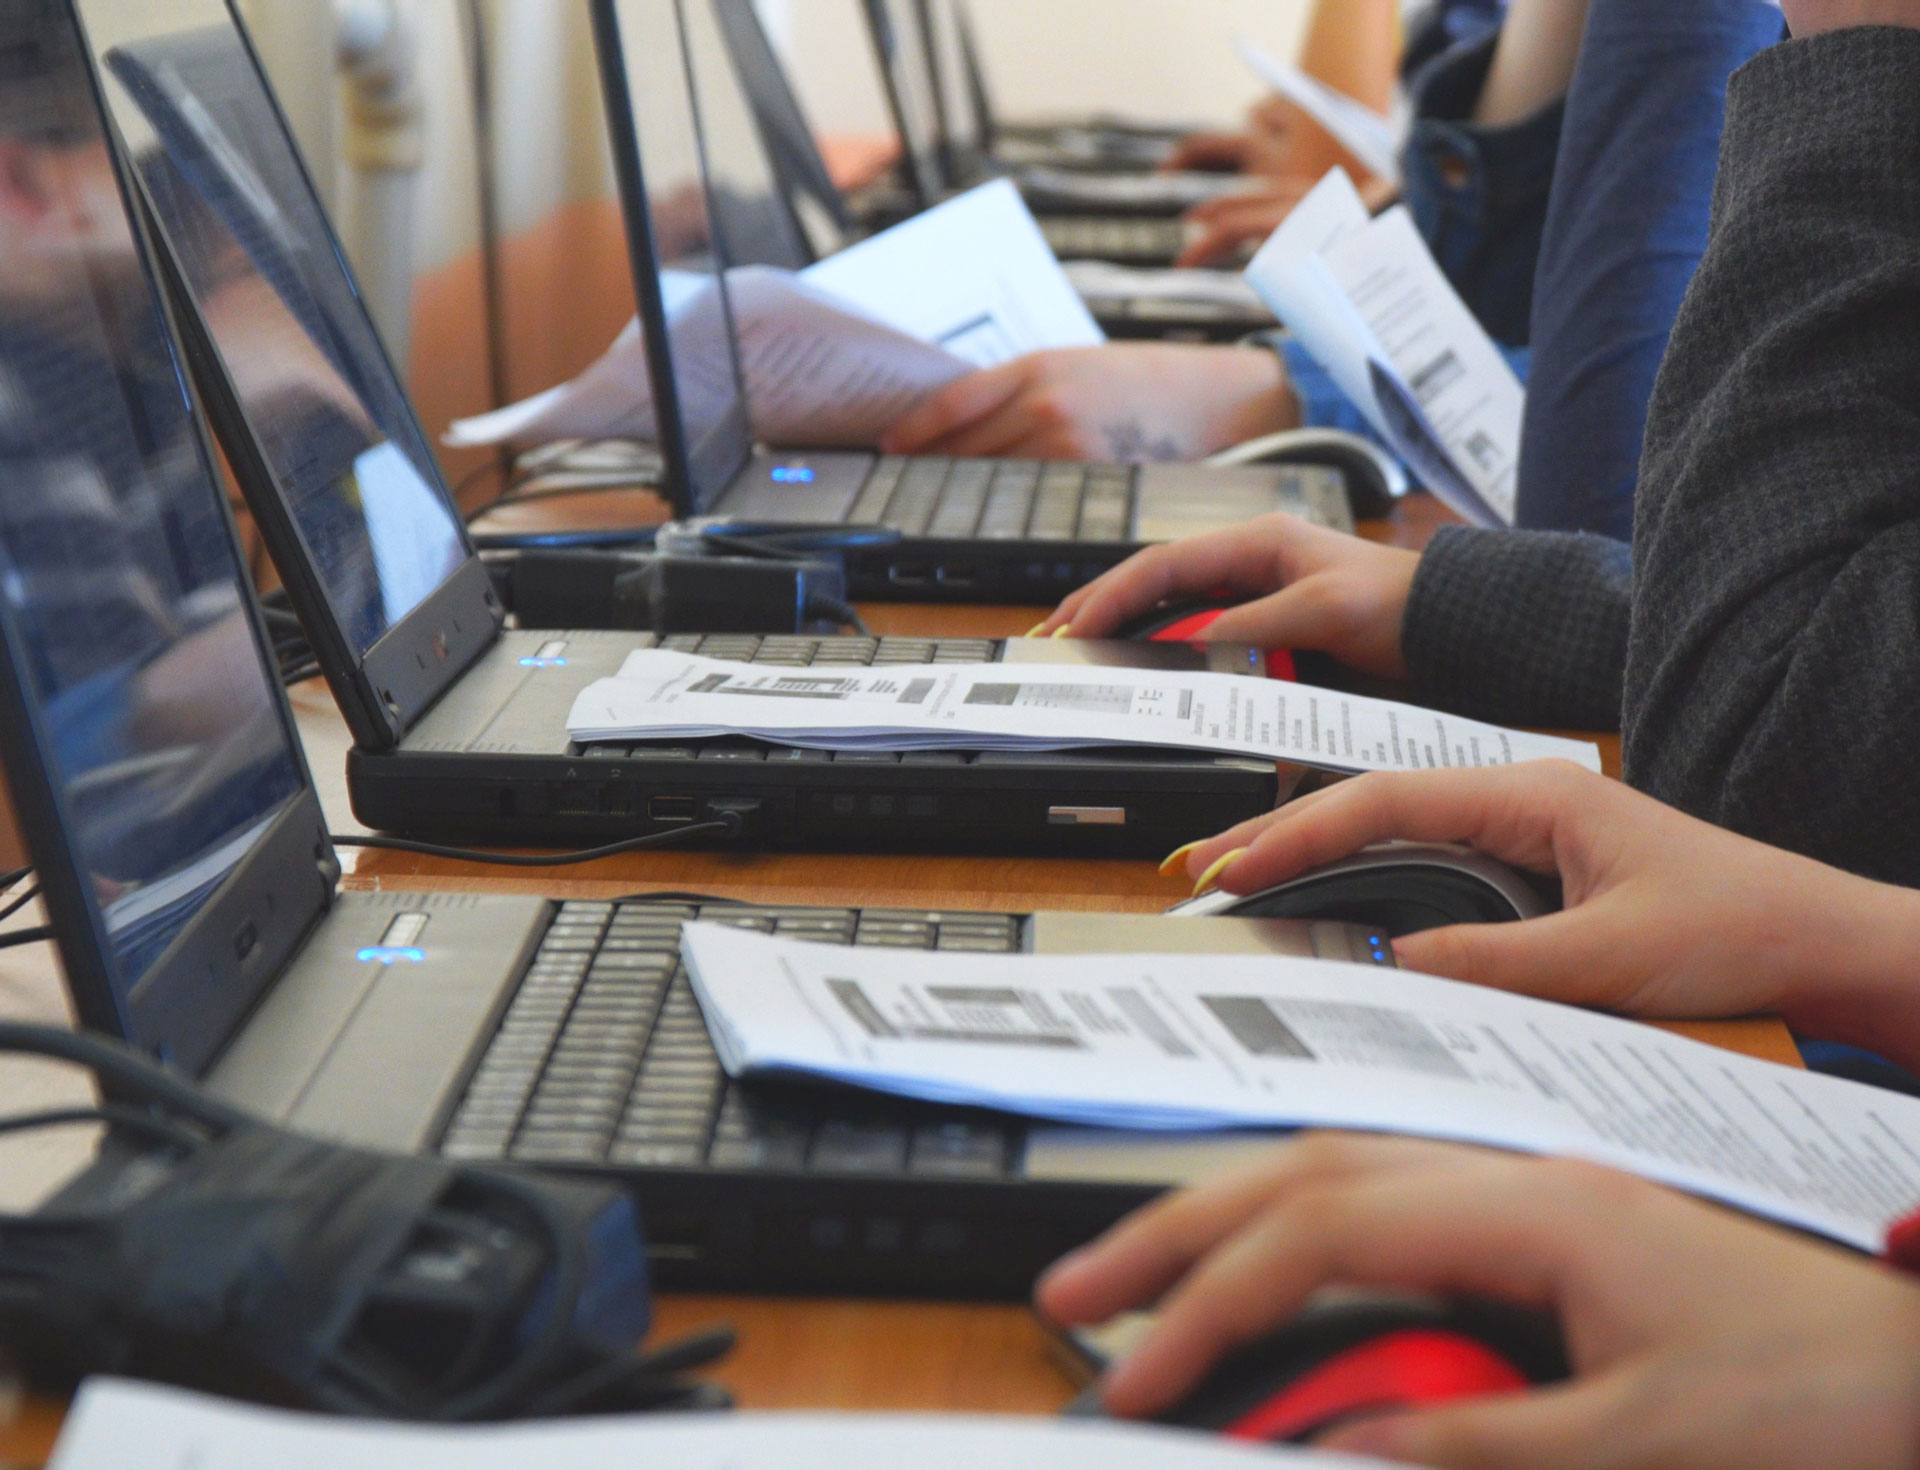 Cyberattacks against schools see dramatic surge